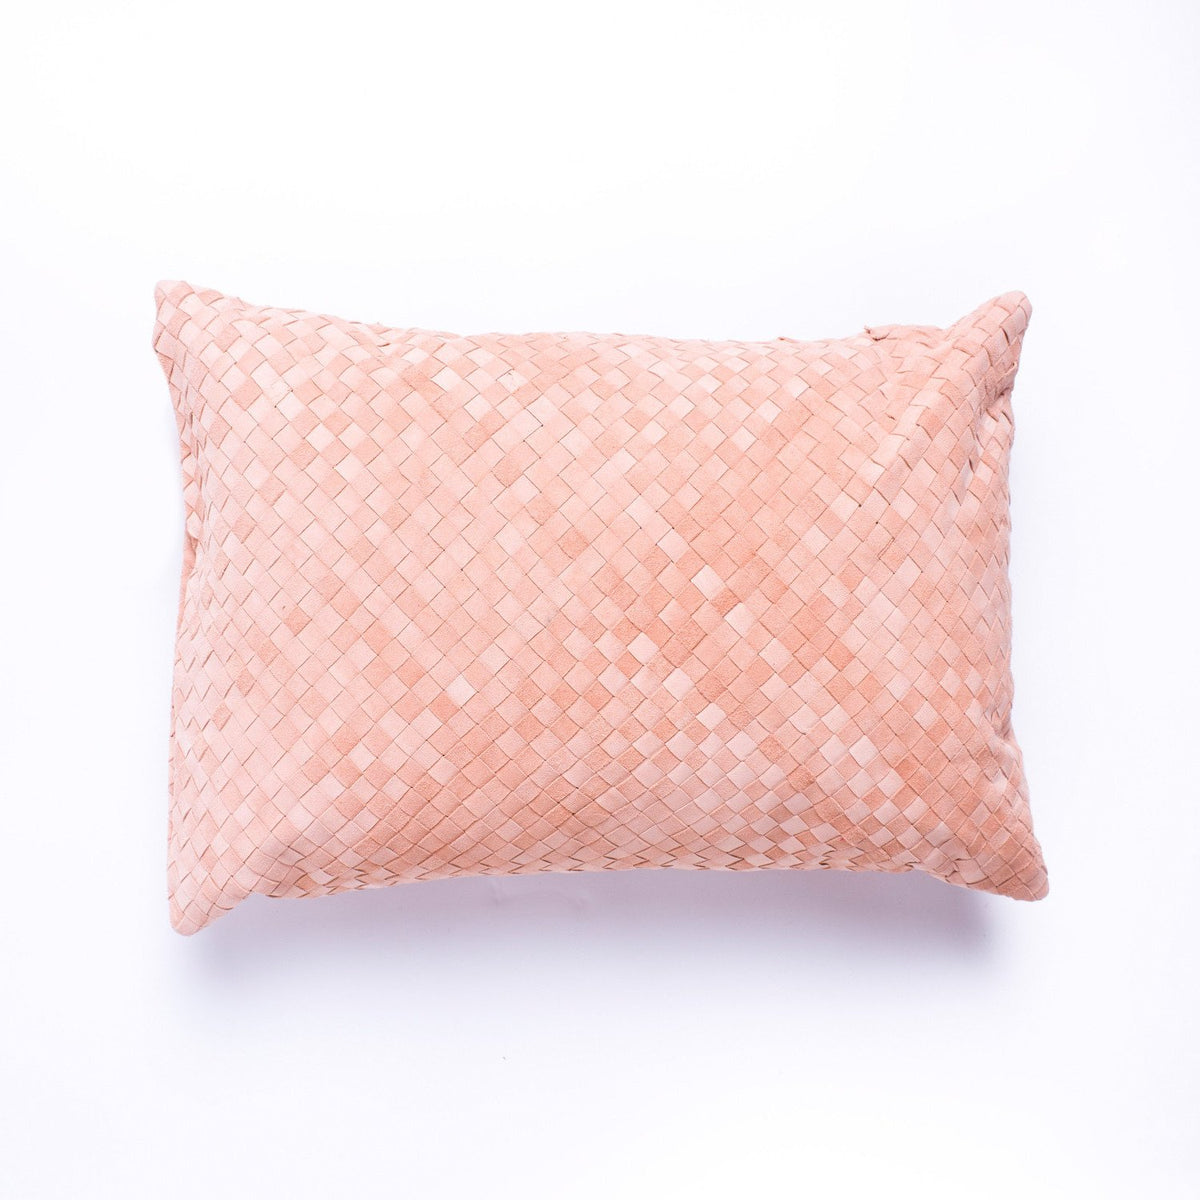 Fred Cushion Cover - Blush Suede